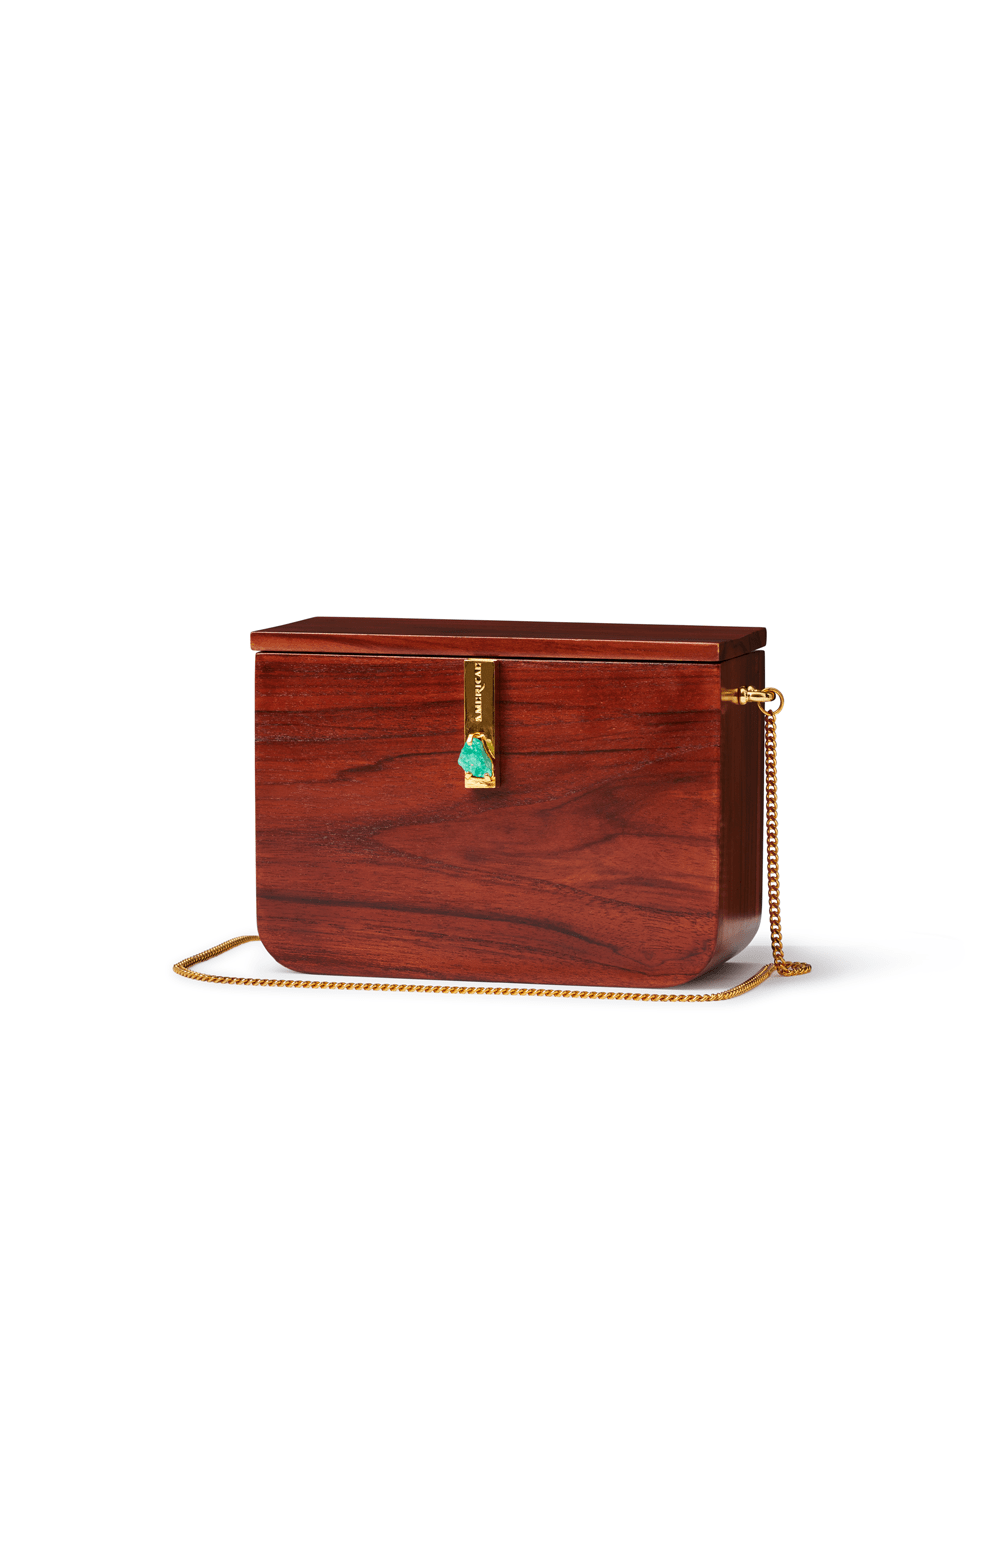 Americae handbags The Rectangular Raw Emerald Bag